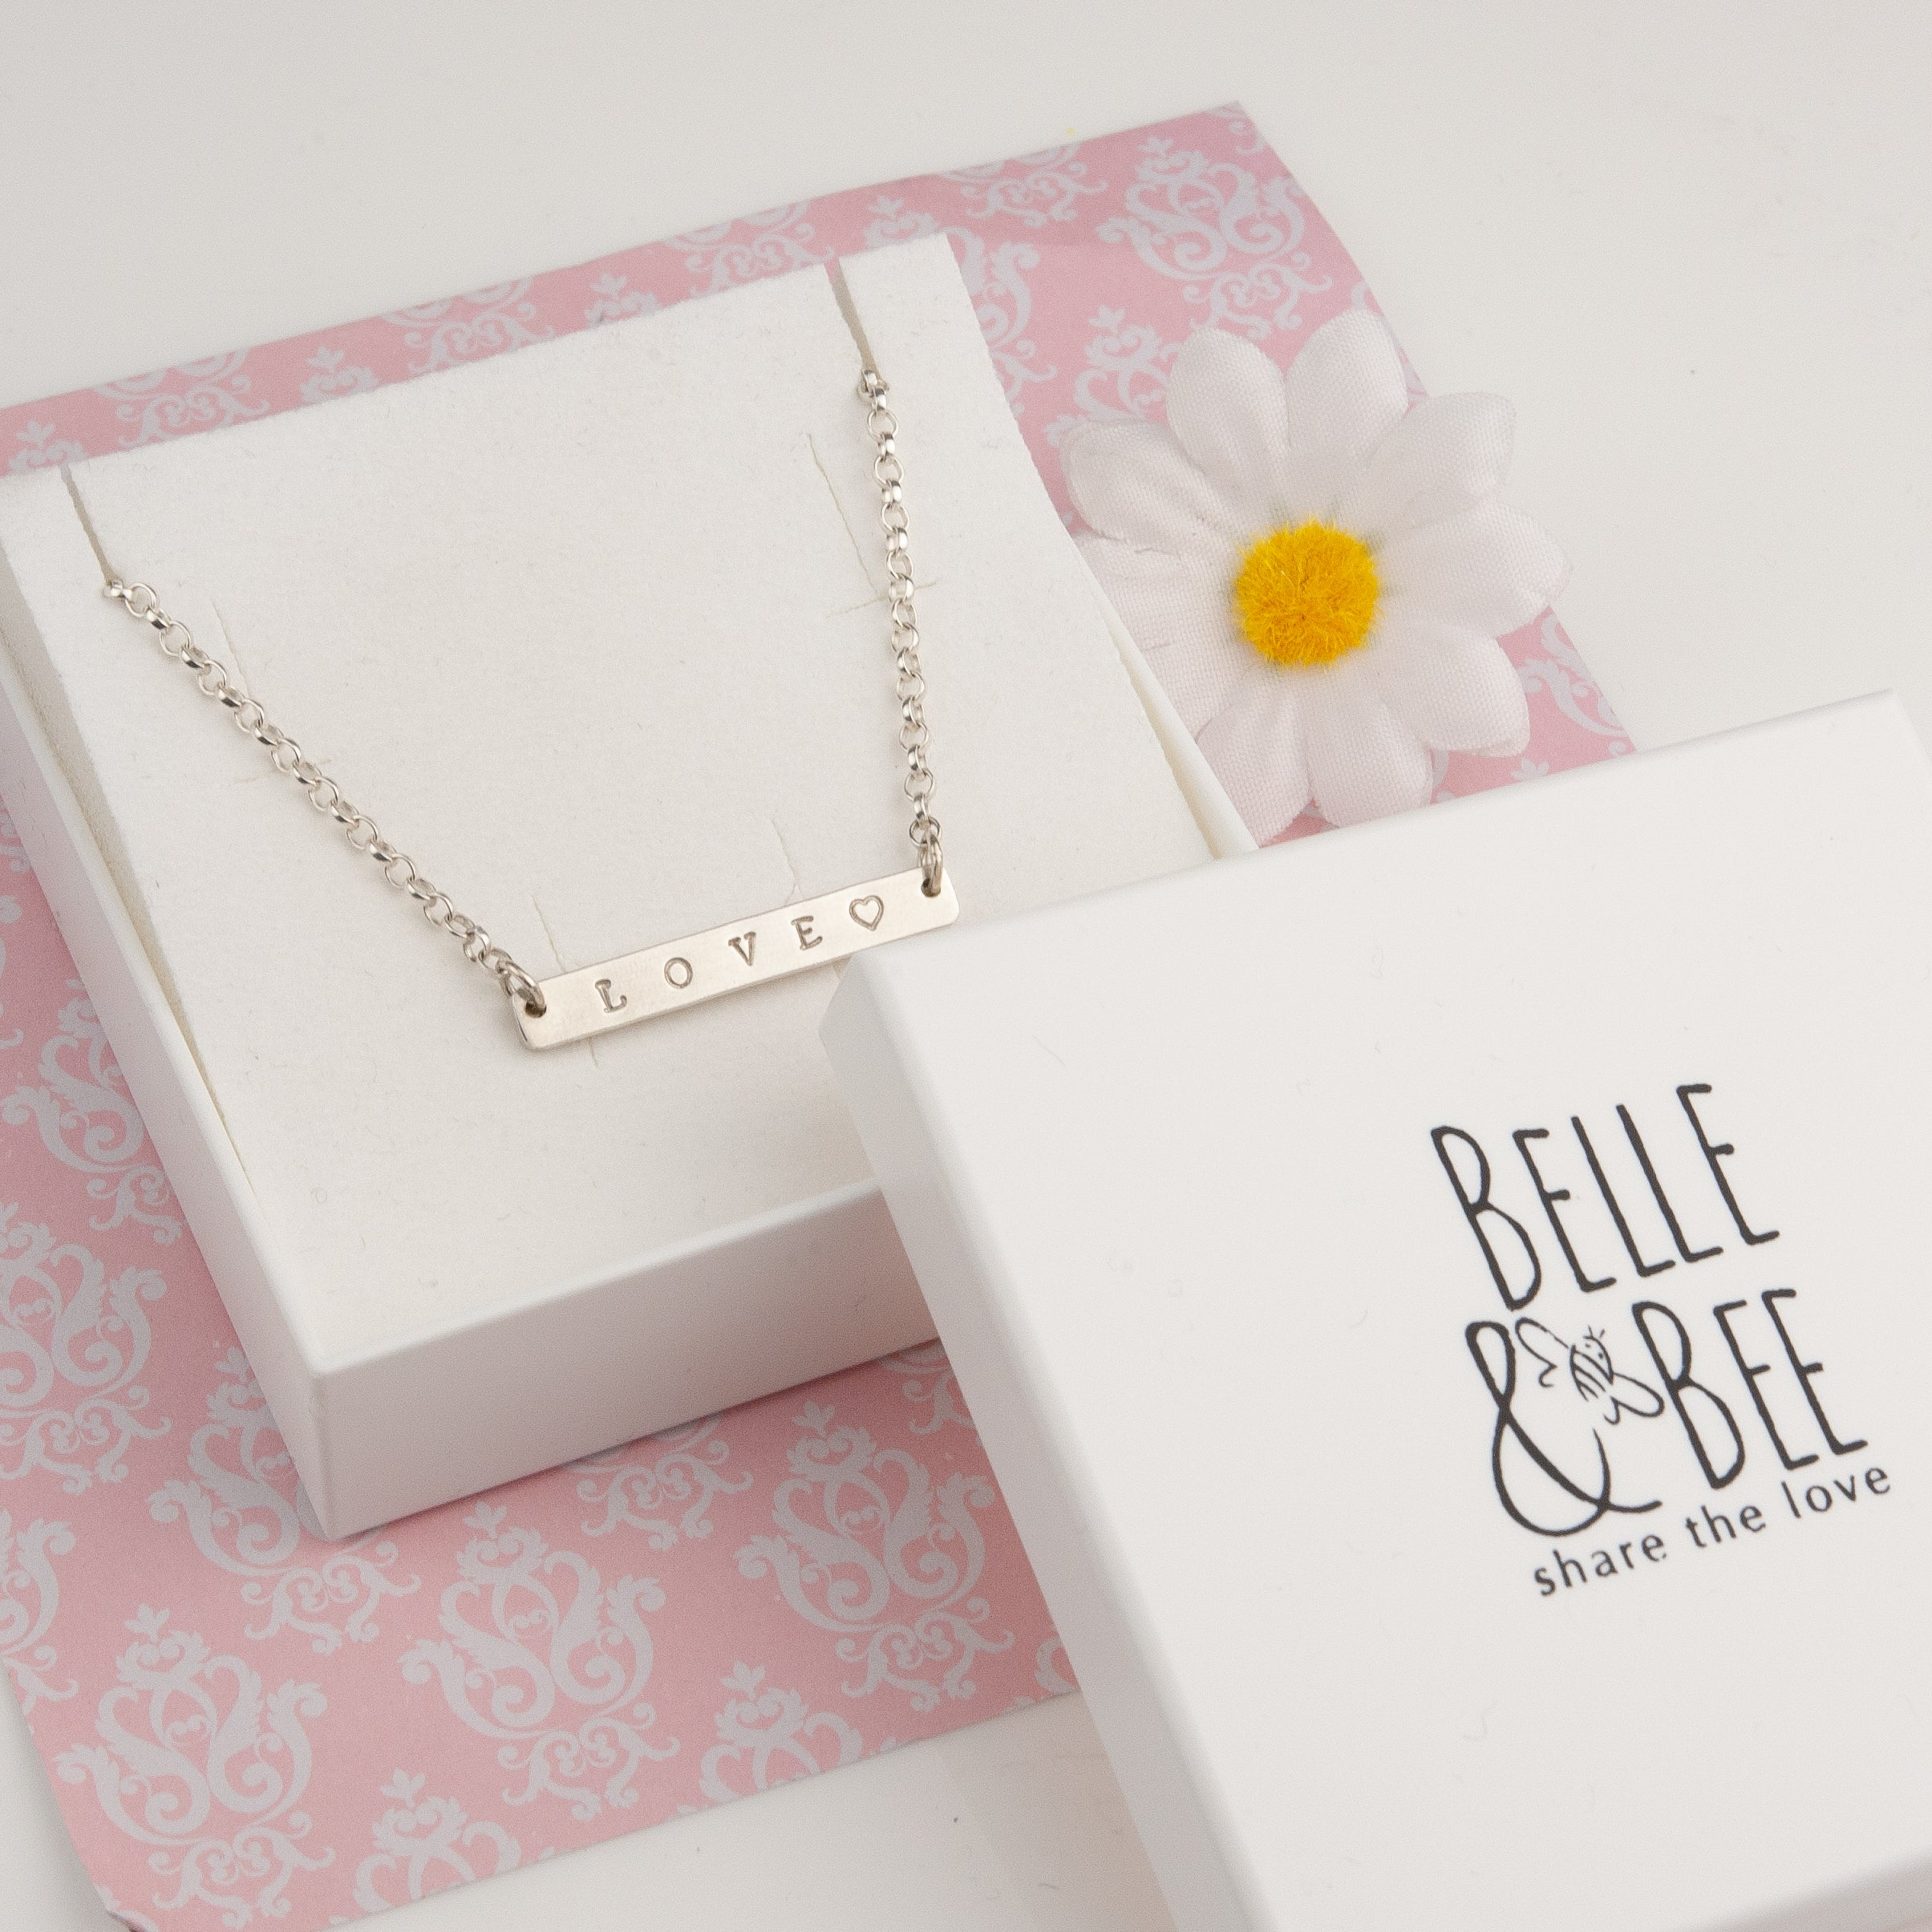 Belle & Bee bar necklace